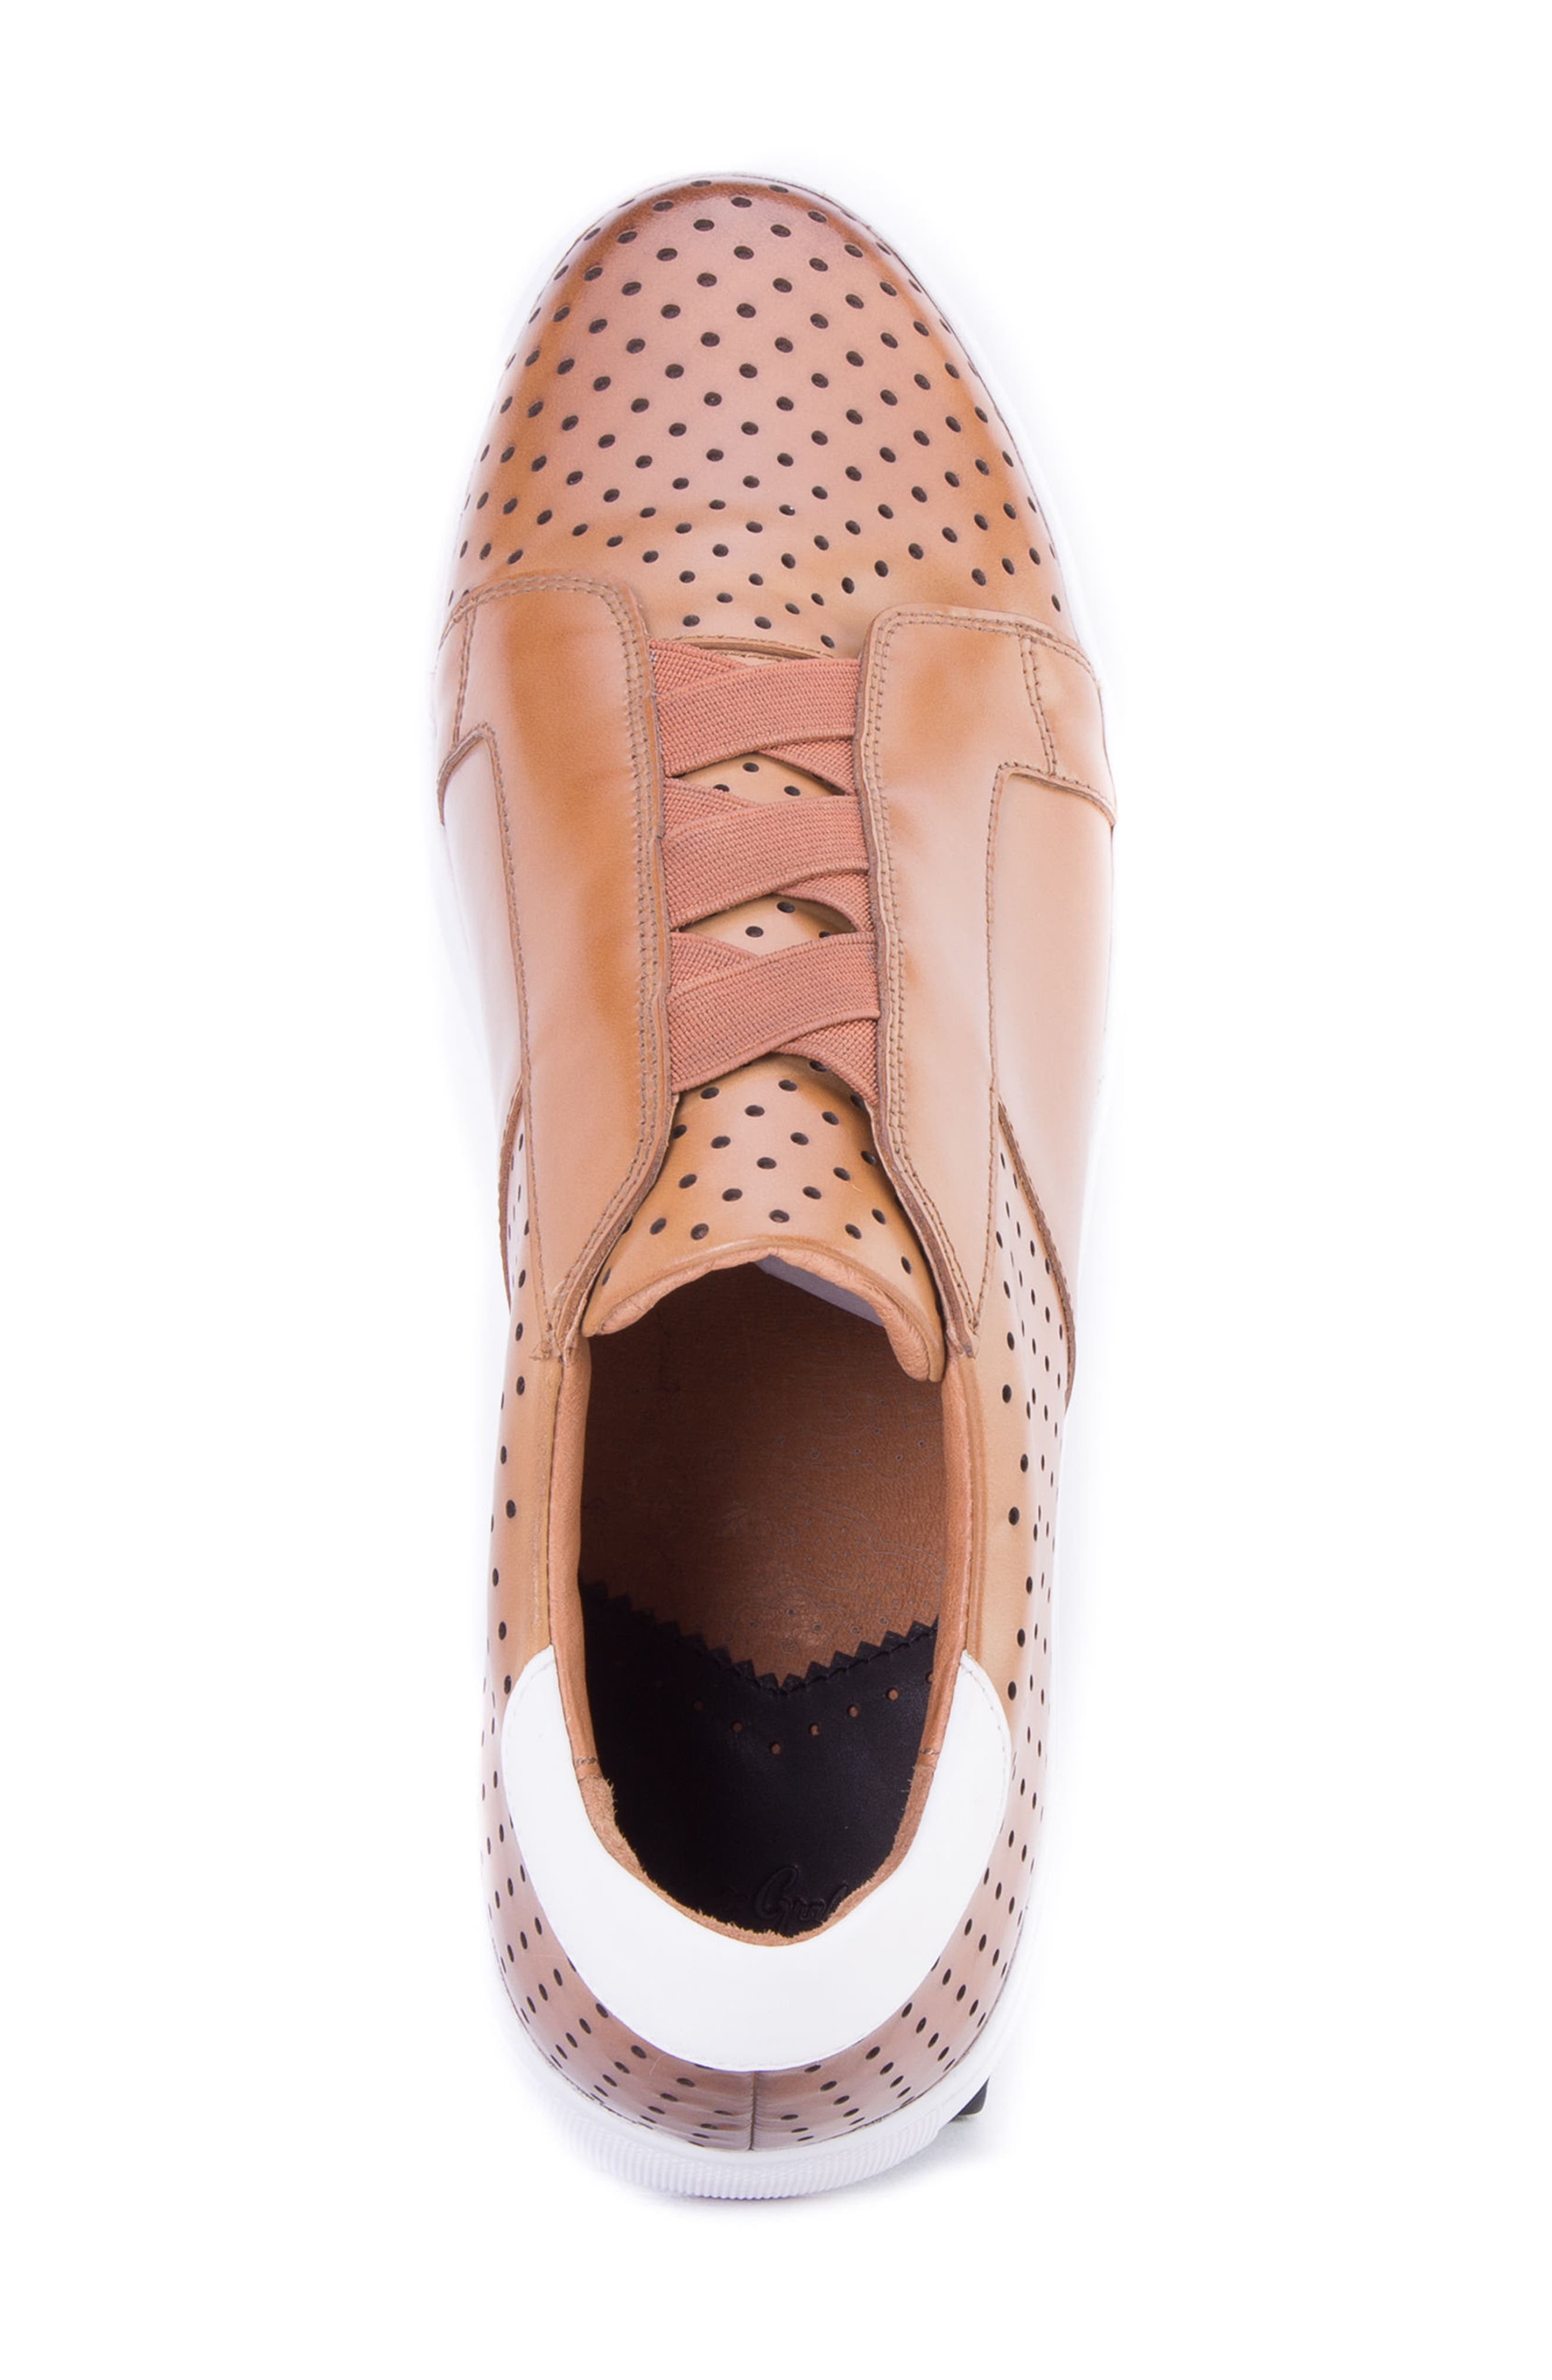 Rowley Perforated Laceless Sneaker,                             Alternate thumbnail 5, color,                             COGNAC LEATHER